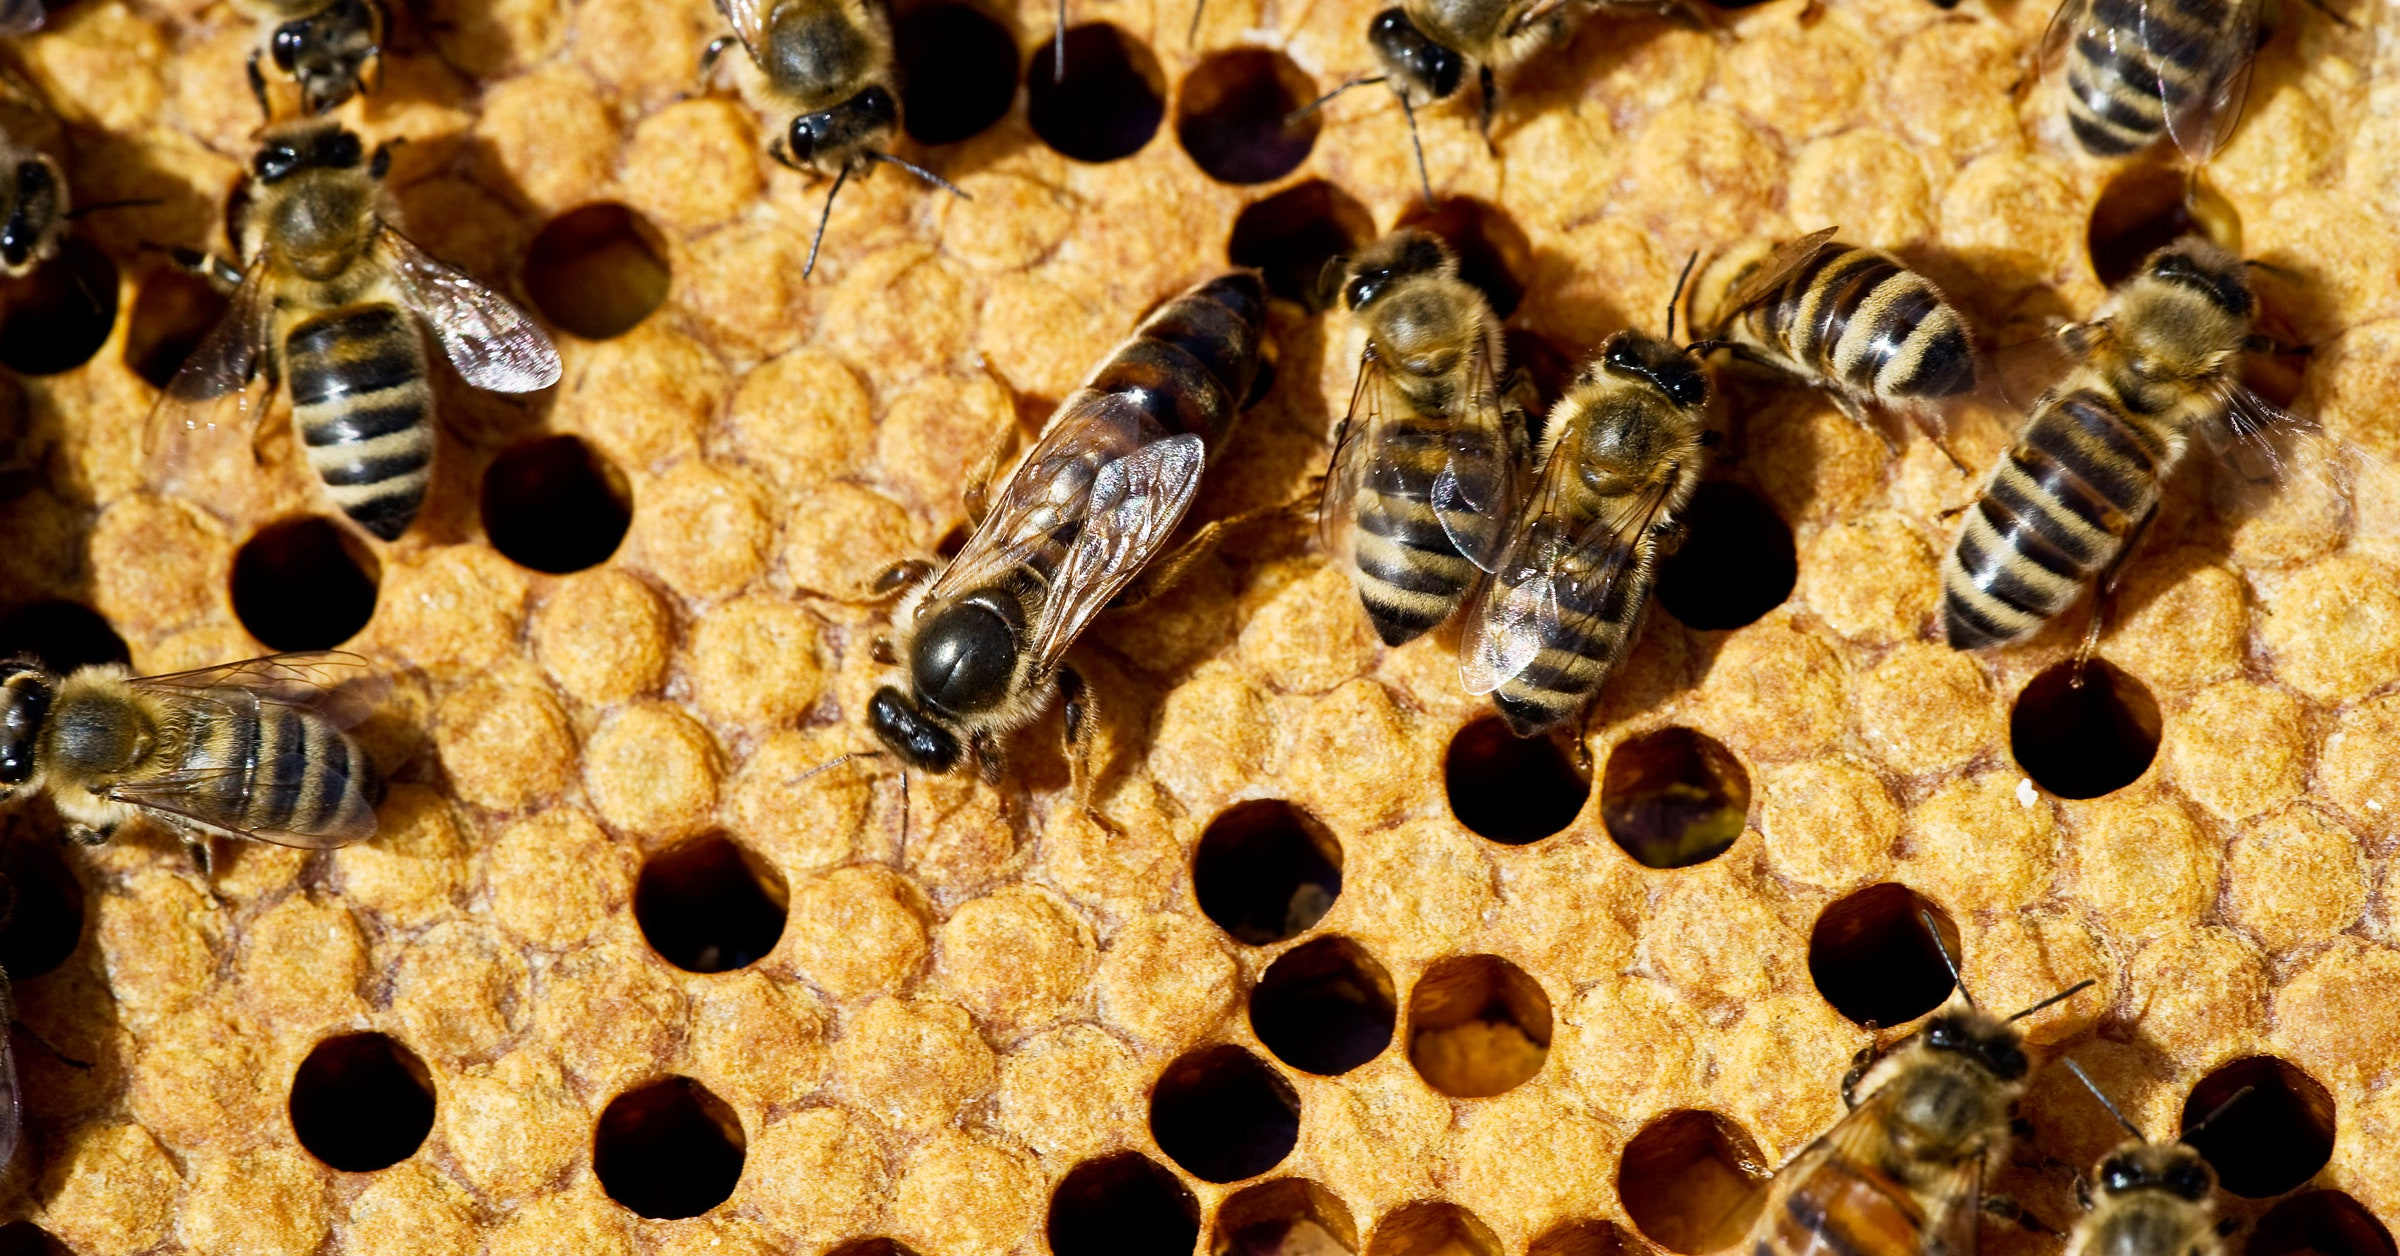 Honeybees Show Improvement After Bad Year